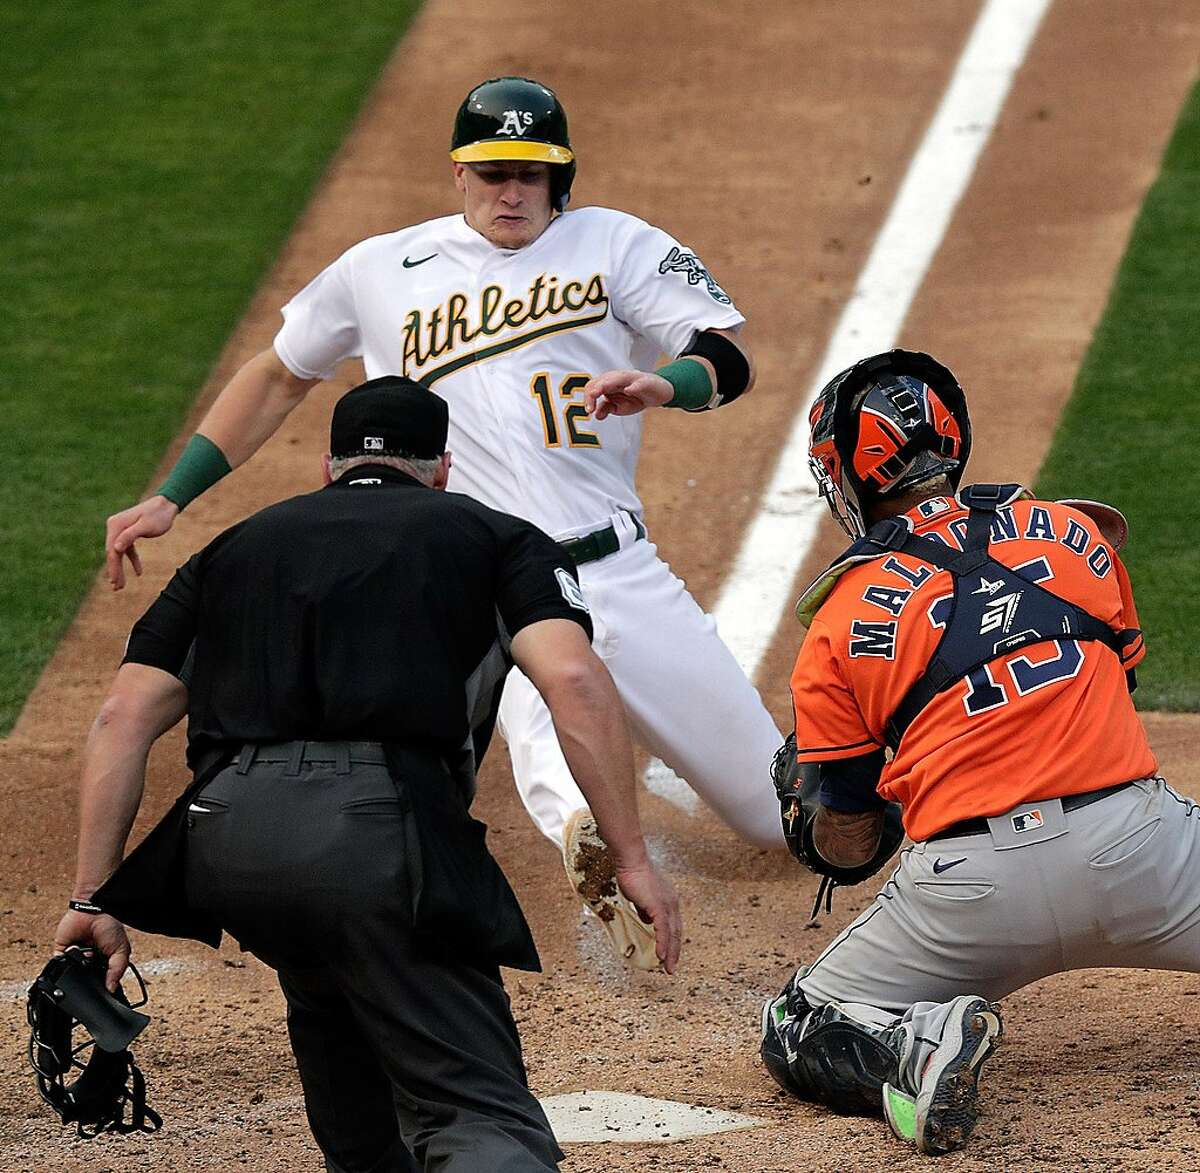 Sean Murphy (12) out at the plate in the seventh inning as the Oakland Athletics played the Houston Astros in the first game of a double header at the Coliseum in Oakland, Calif., on Tuesday, September 8, 2020. The A's won the game 4-2.